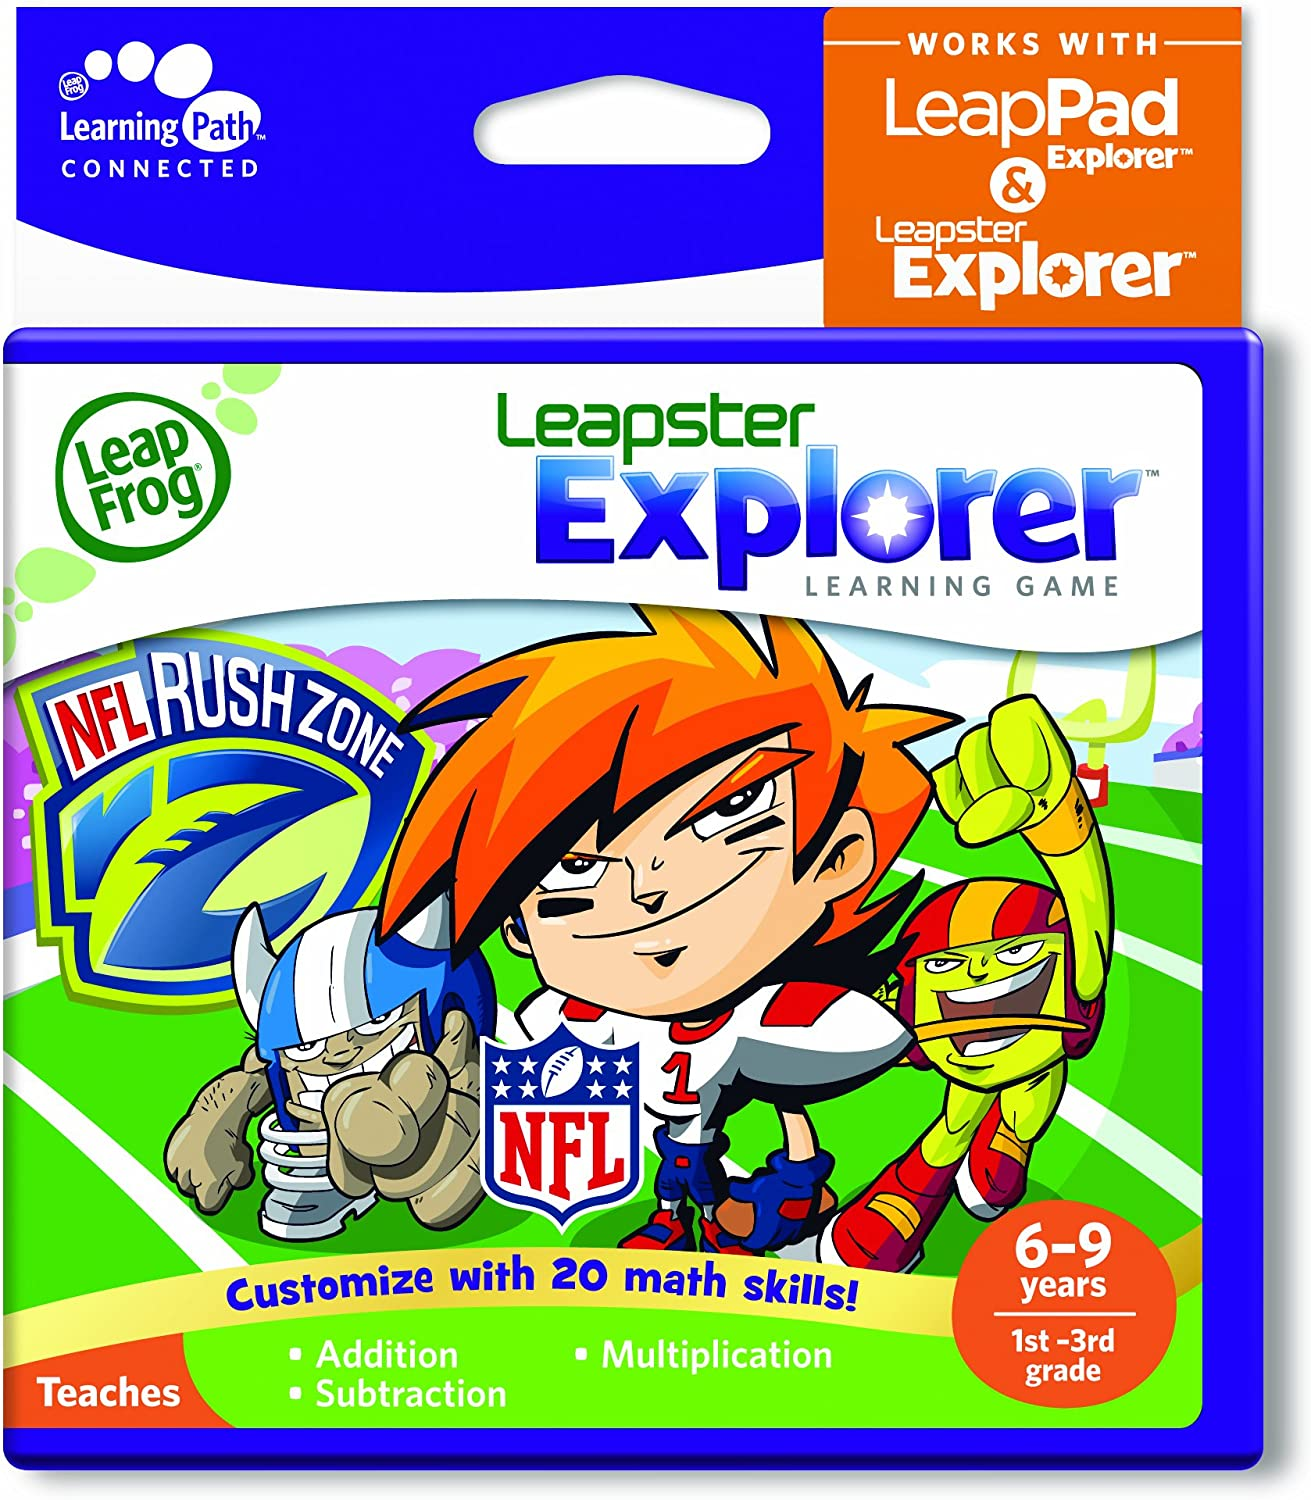 Max 55% OFF LeapFrog Explorer Learning Game: NFLRush works LeapPa Bombing free shipping Zone with